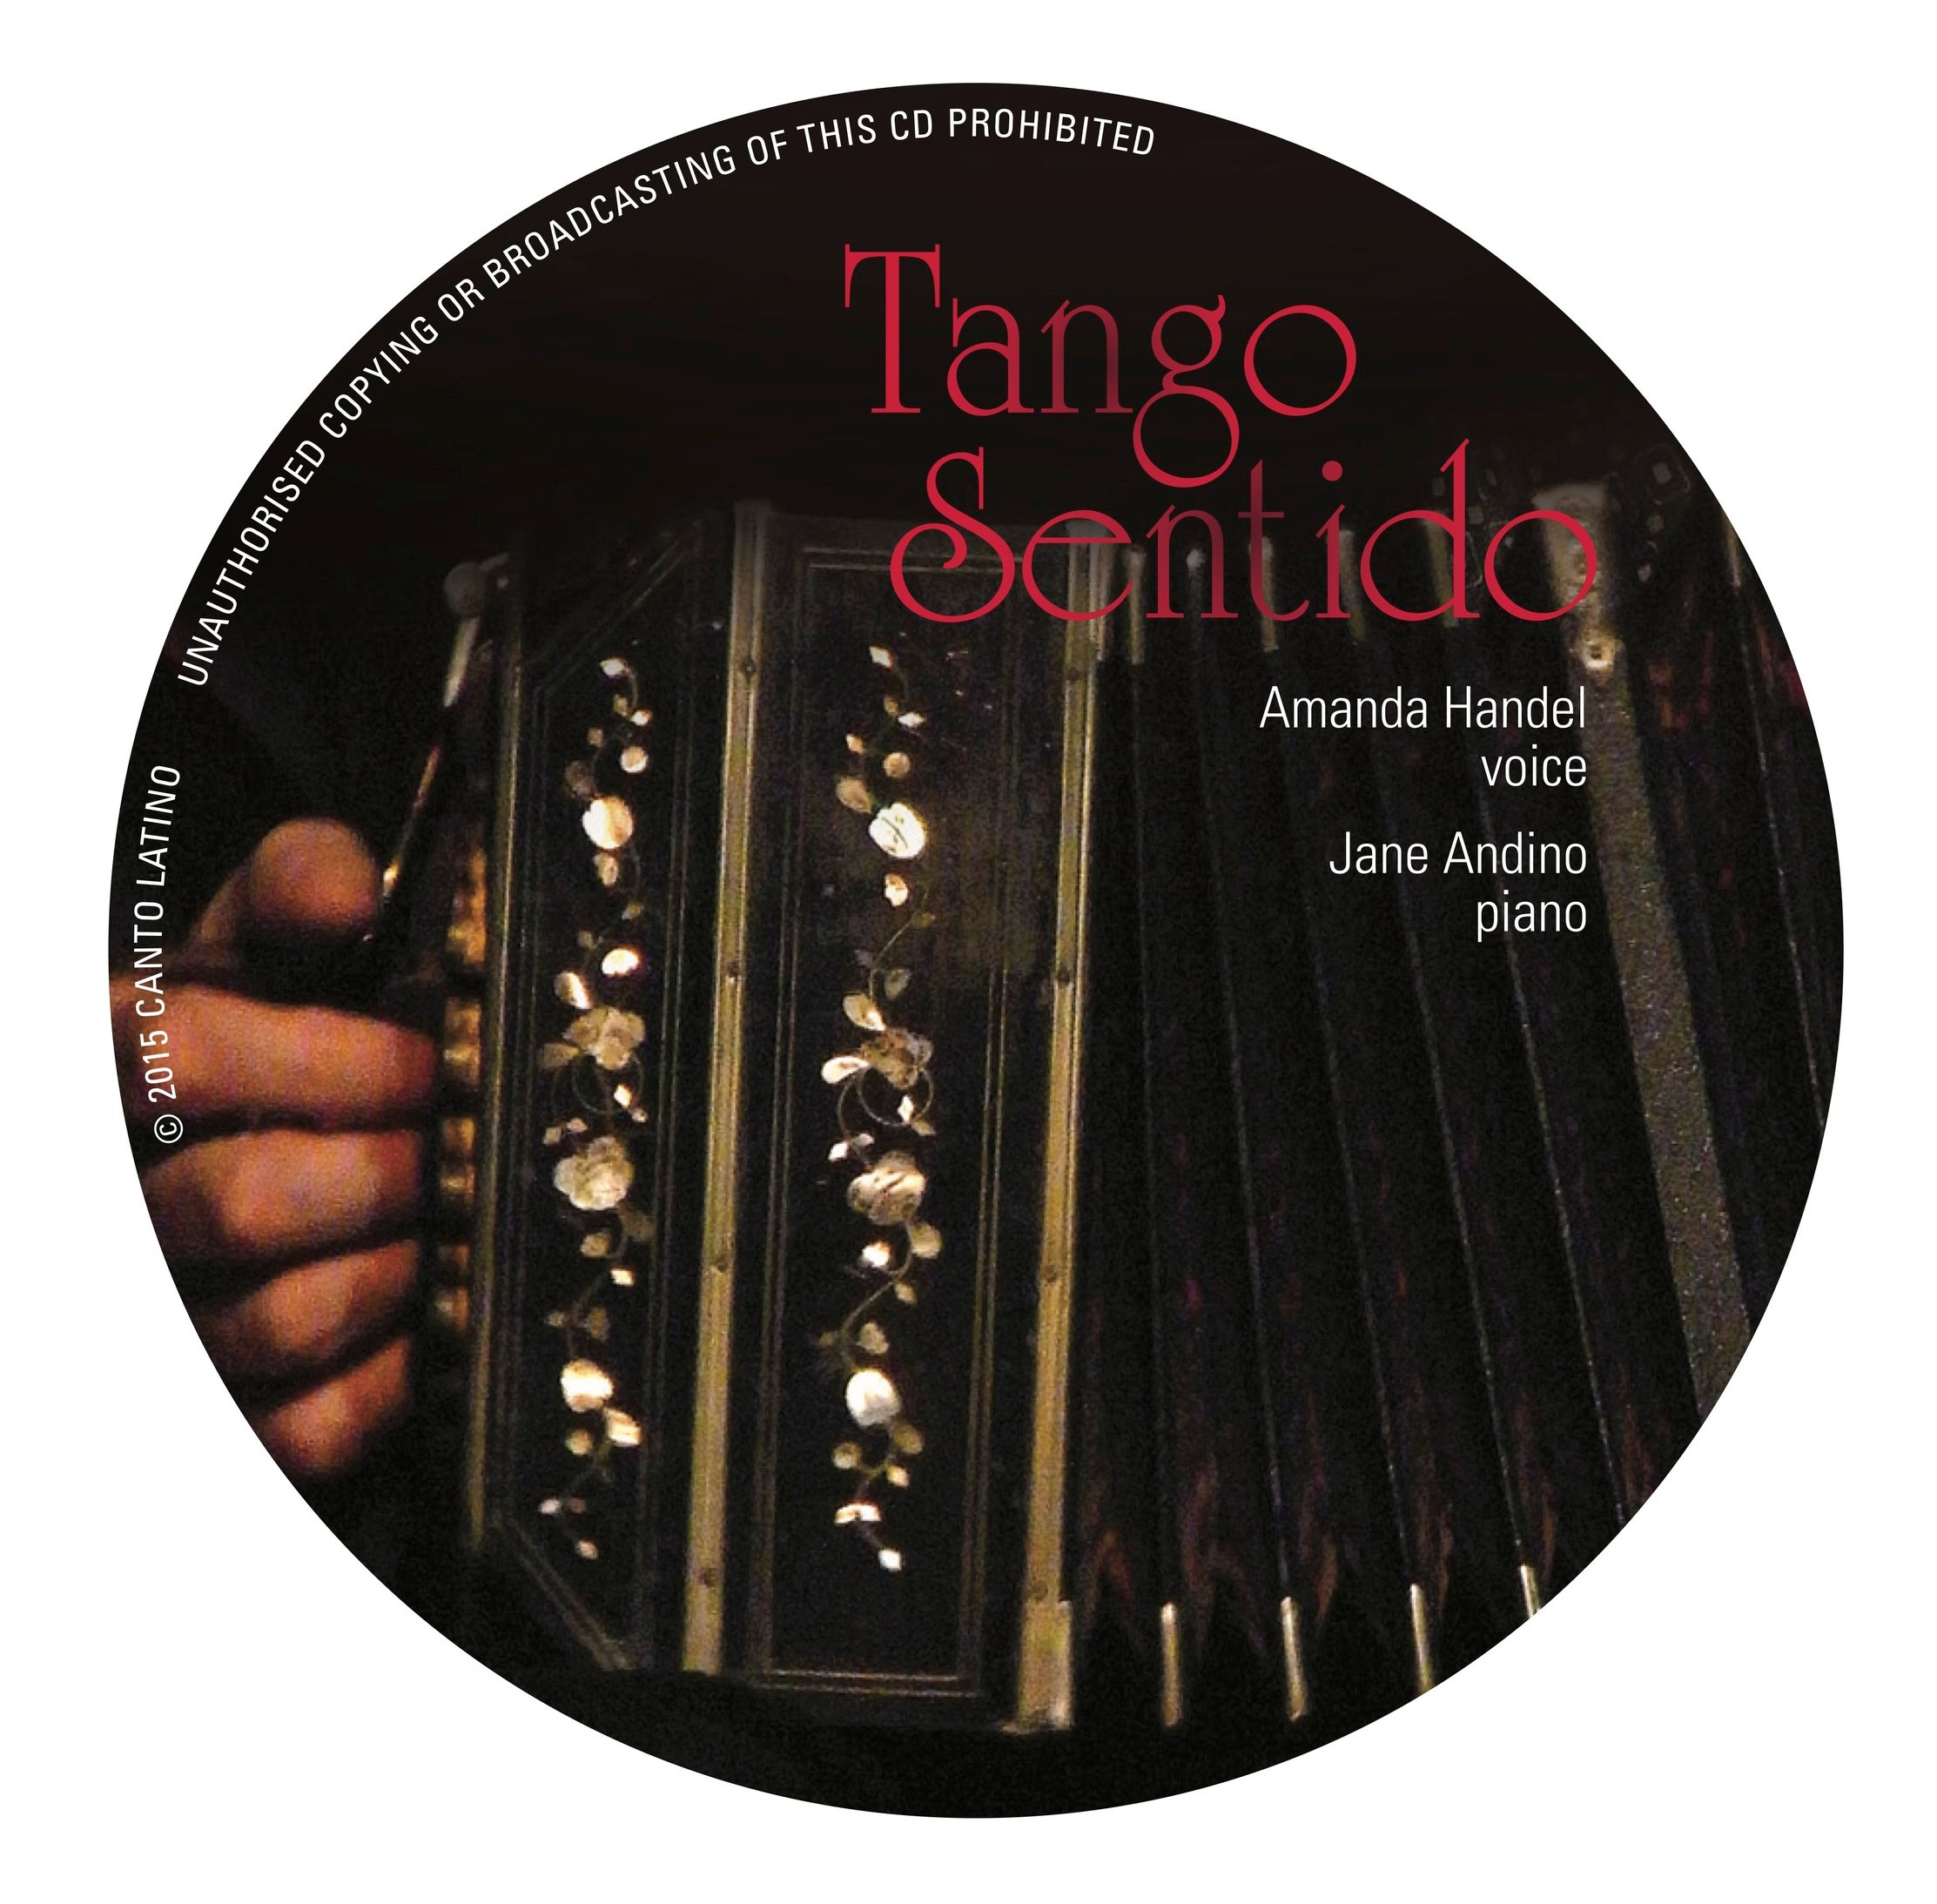 AS5442+Tango+Sentido-ol+CD.jpg